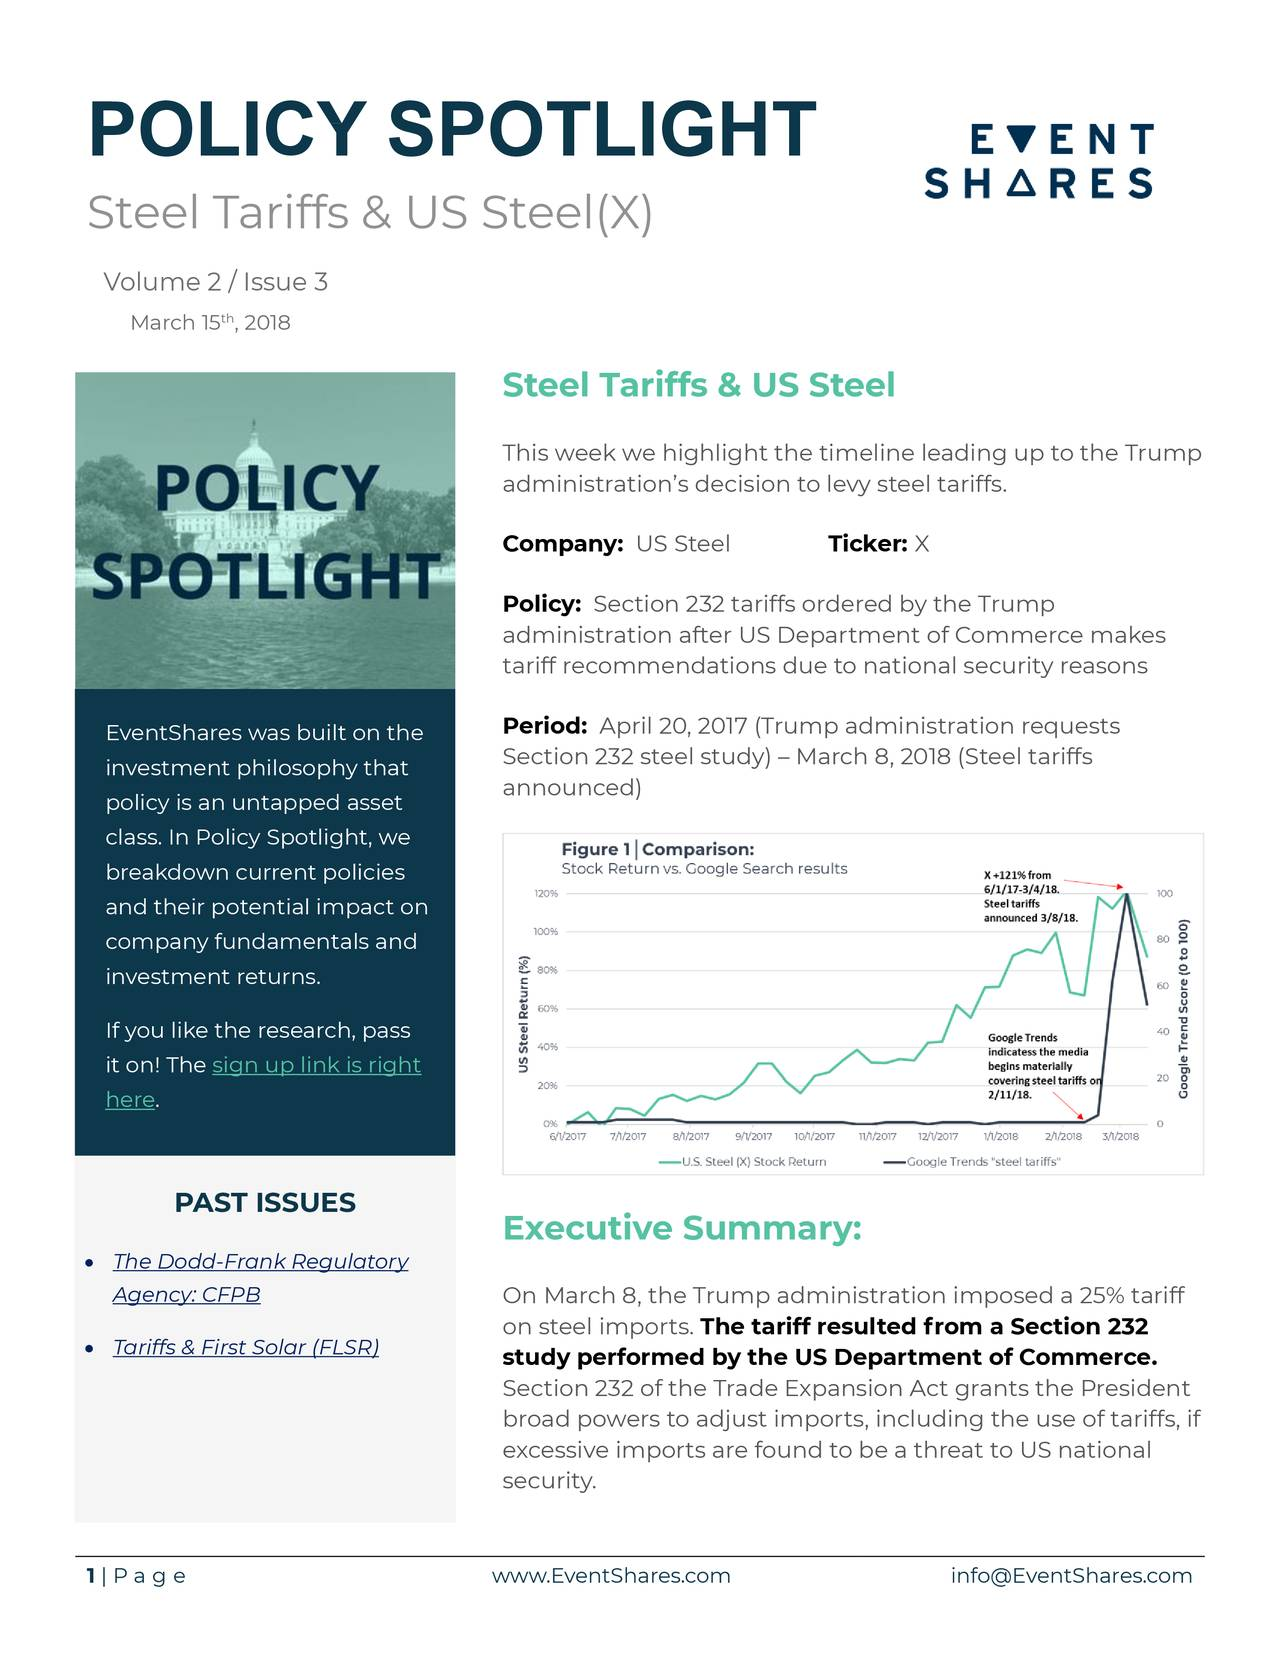 Steel Tariffs & US Steel(X) Volume 2 / Issue 3 March 15 , 2018 Steel Tariffs & US Steel This week we highlight the timeline leading up to the Trump administration's decision to levy steel tariffs. Company: US Steel Ticker: X Policy: Section 232 tariffs ordered by the Trump administration after US Department of Commerce makes tariff recommendations due to national security reasons EventShares was built on the Period: April 20, 2017 (Trump administration requests Section 232 steel study) – March 8, 2018 (Steel tariffs investment philosophy that policy is an untapped asset announced) class. In Policy Spotlight, we breakdown current policies and their potential impact on company fundamentals and investment returns. If you like the research, pass it on! The sign up link is right here. PAST ISSUES Executive Summary: • The Dodd-Frank Regulatory Agency: CFPB On March 8, the Trump administration imposed a 25% tariff on steel imports. The tariff resulted from a Section 232 • Tariffs & First Solar (FLSR) study performed by the US Department of Commerce. Section 232 of the Trade Expansion Act grants the President broad powers to adjust imports, including the use of tariffs, if excessive imports are found to be a threat to US national security. 1 | P a g e www.EventShares.com info@EventShares.com